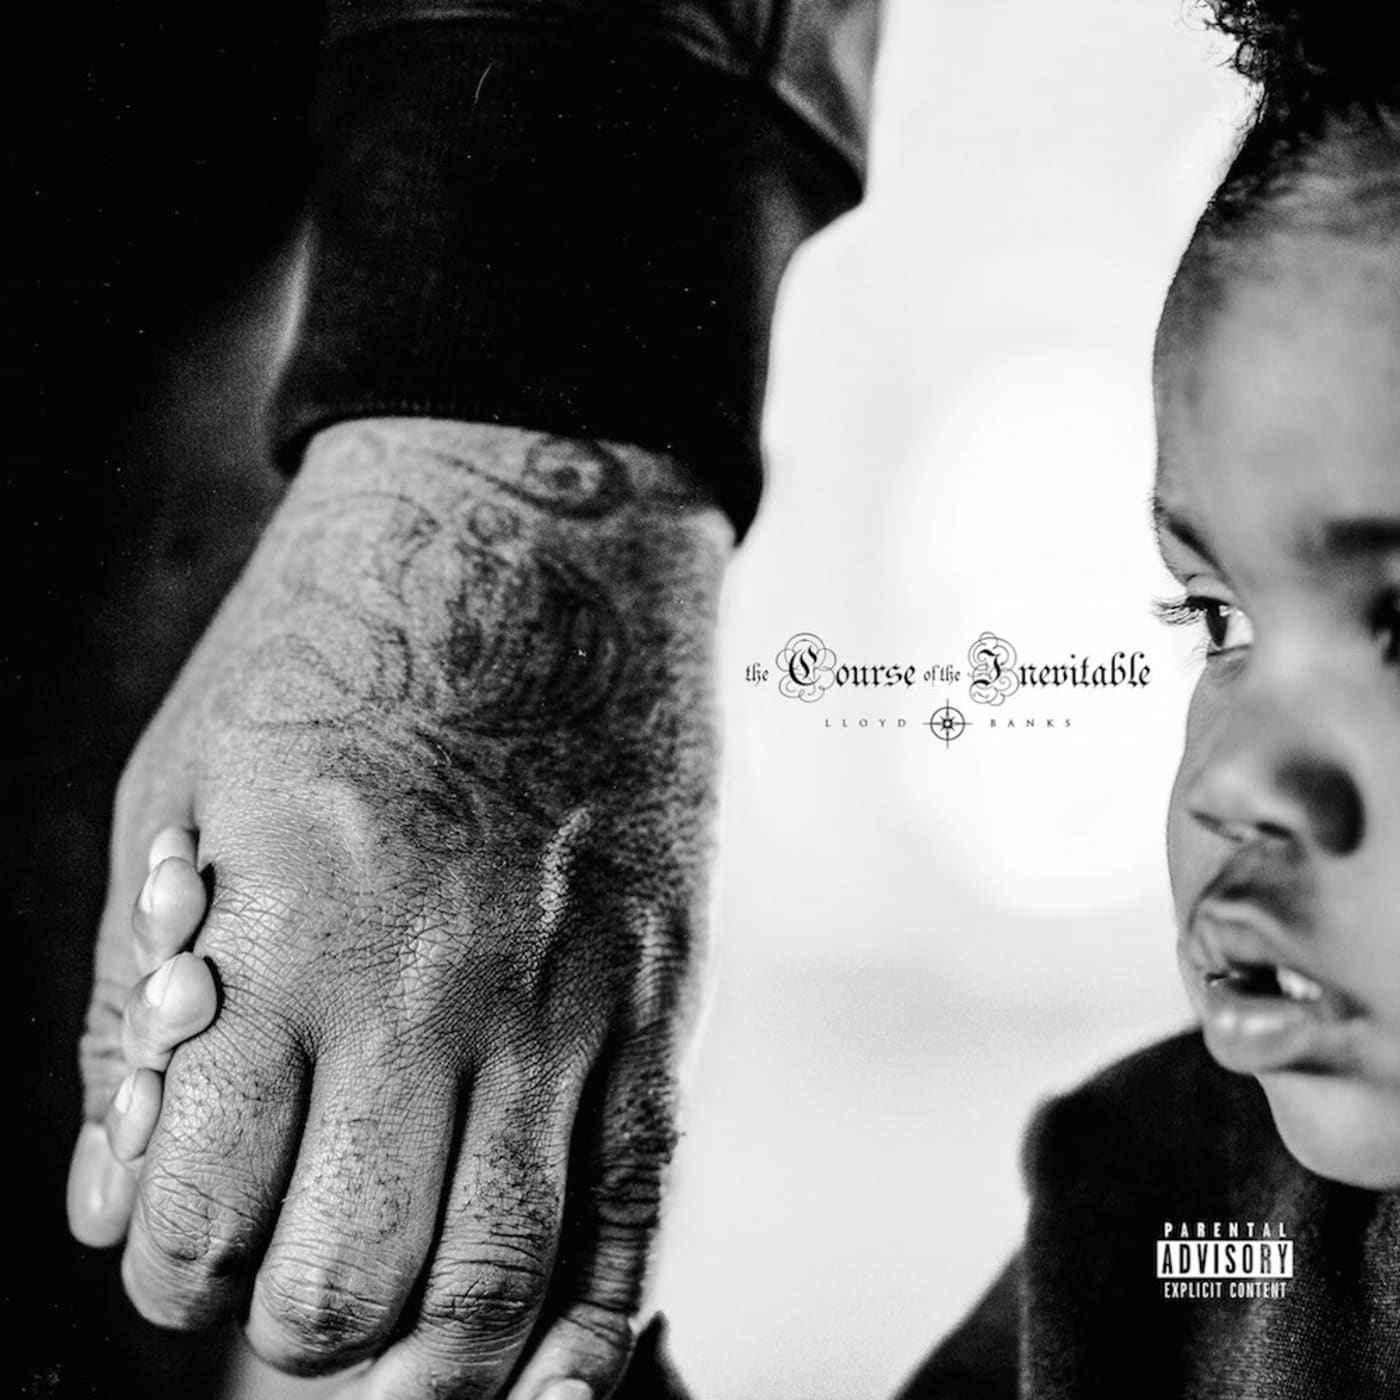 Lloyd Banks — 'The Course of the Inevitable'